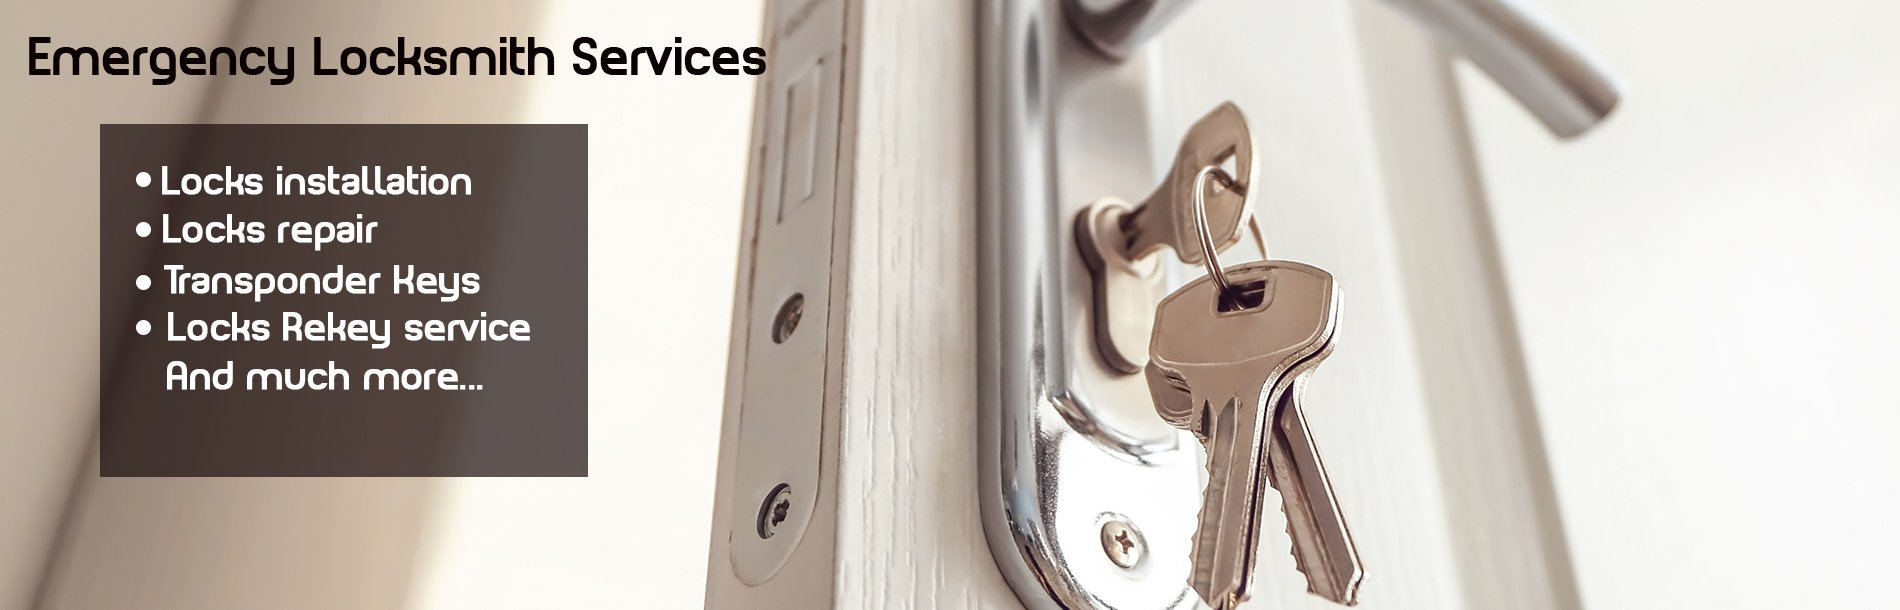 Pittsburgh-City-Locksmith Pittsburgh, PA 412-226-6531